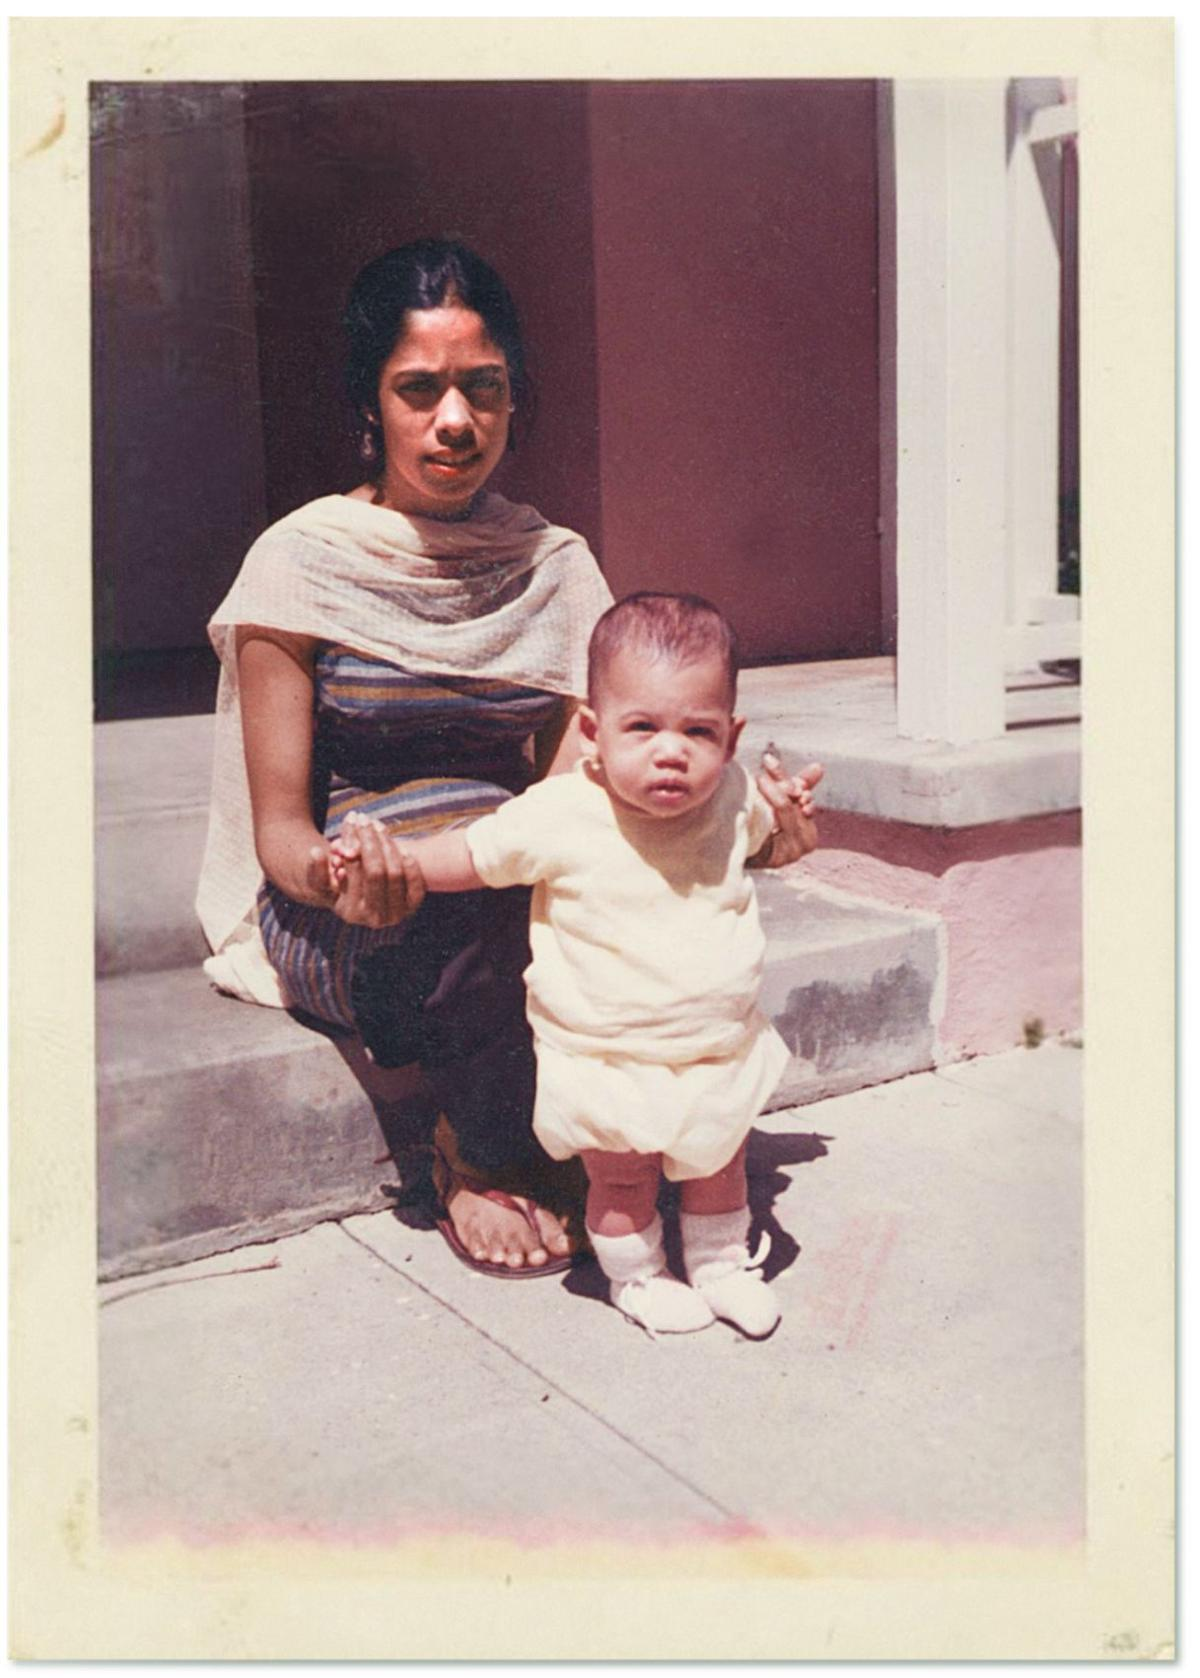 Dreams from her mother: How Shyamala Gopalan prepared Kamala Harris for the White House